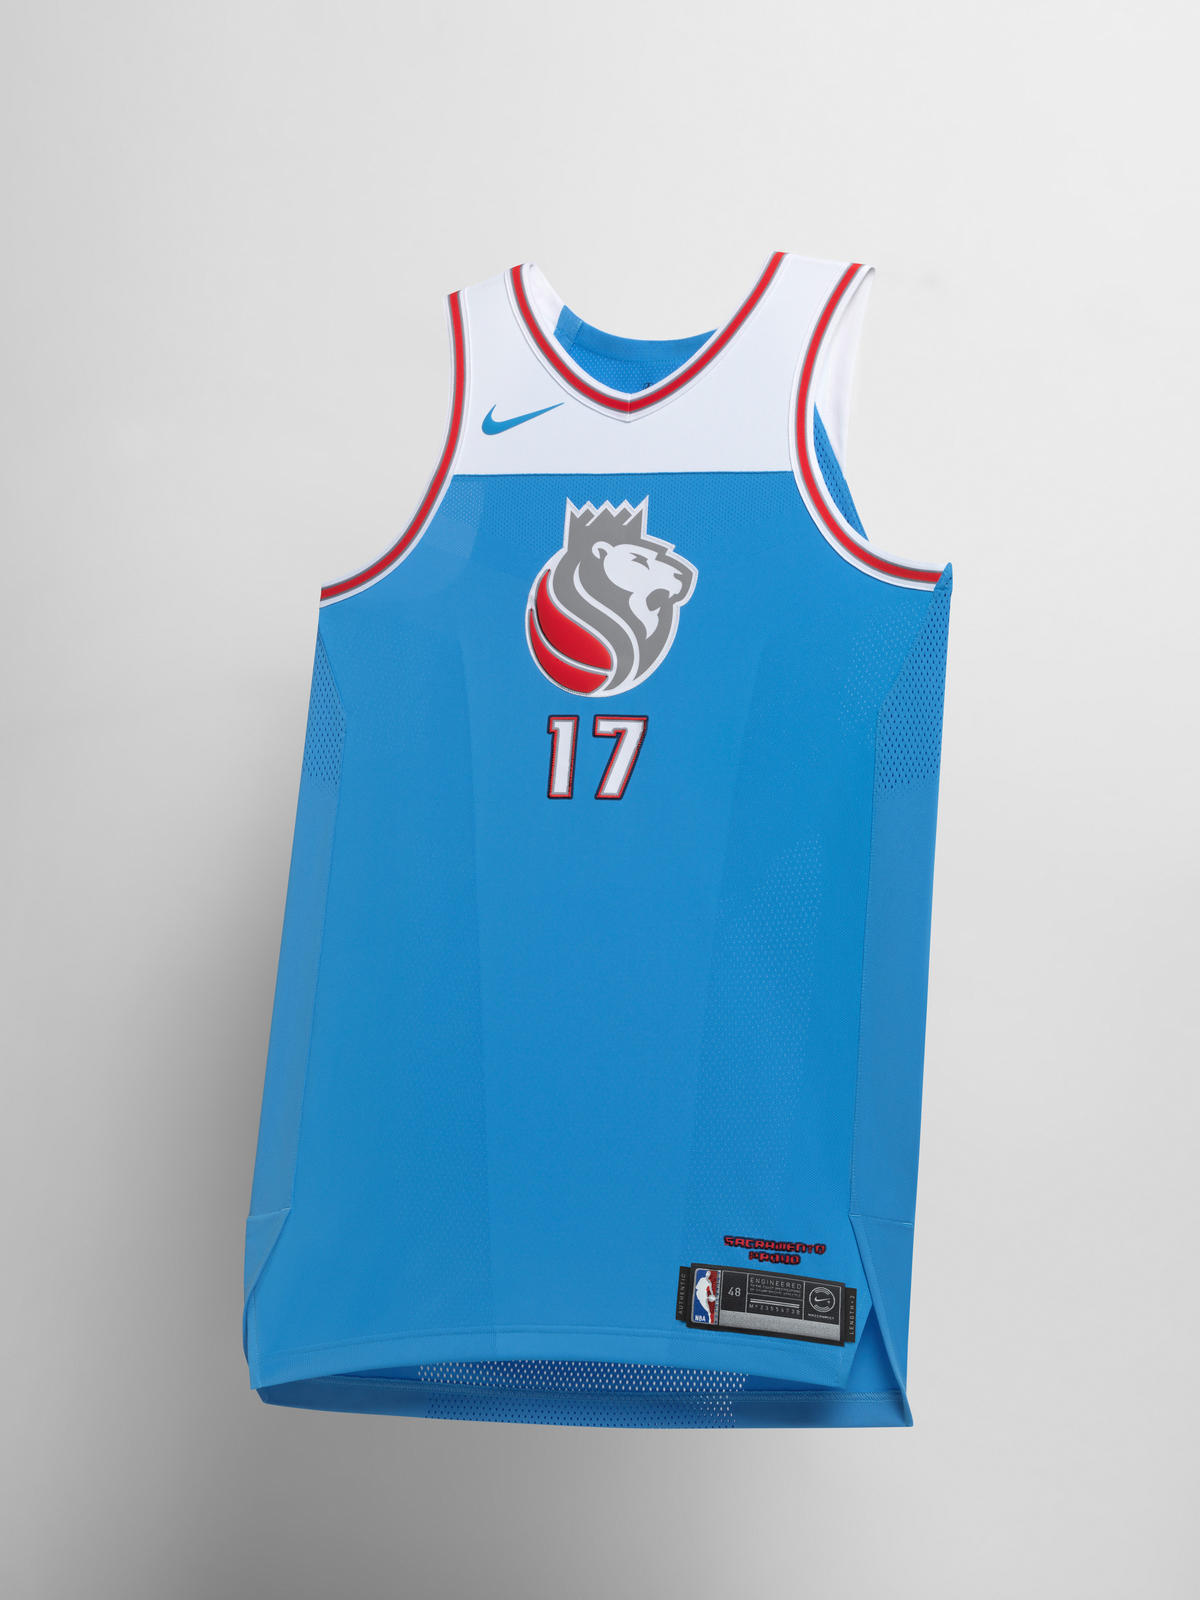 9a3f5c65736 Nike NBA City Edition Uniform - Nike News